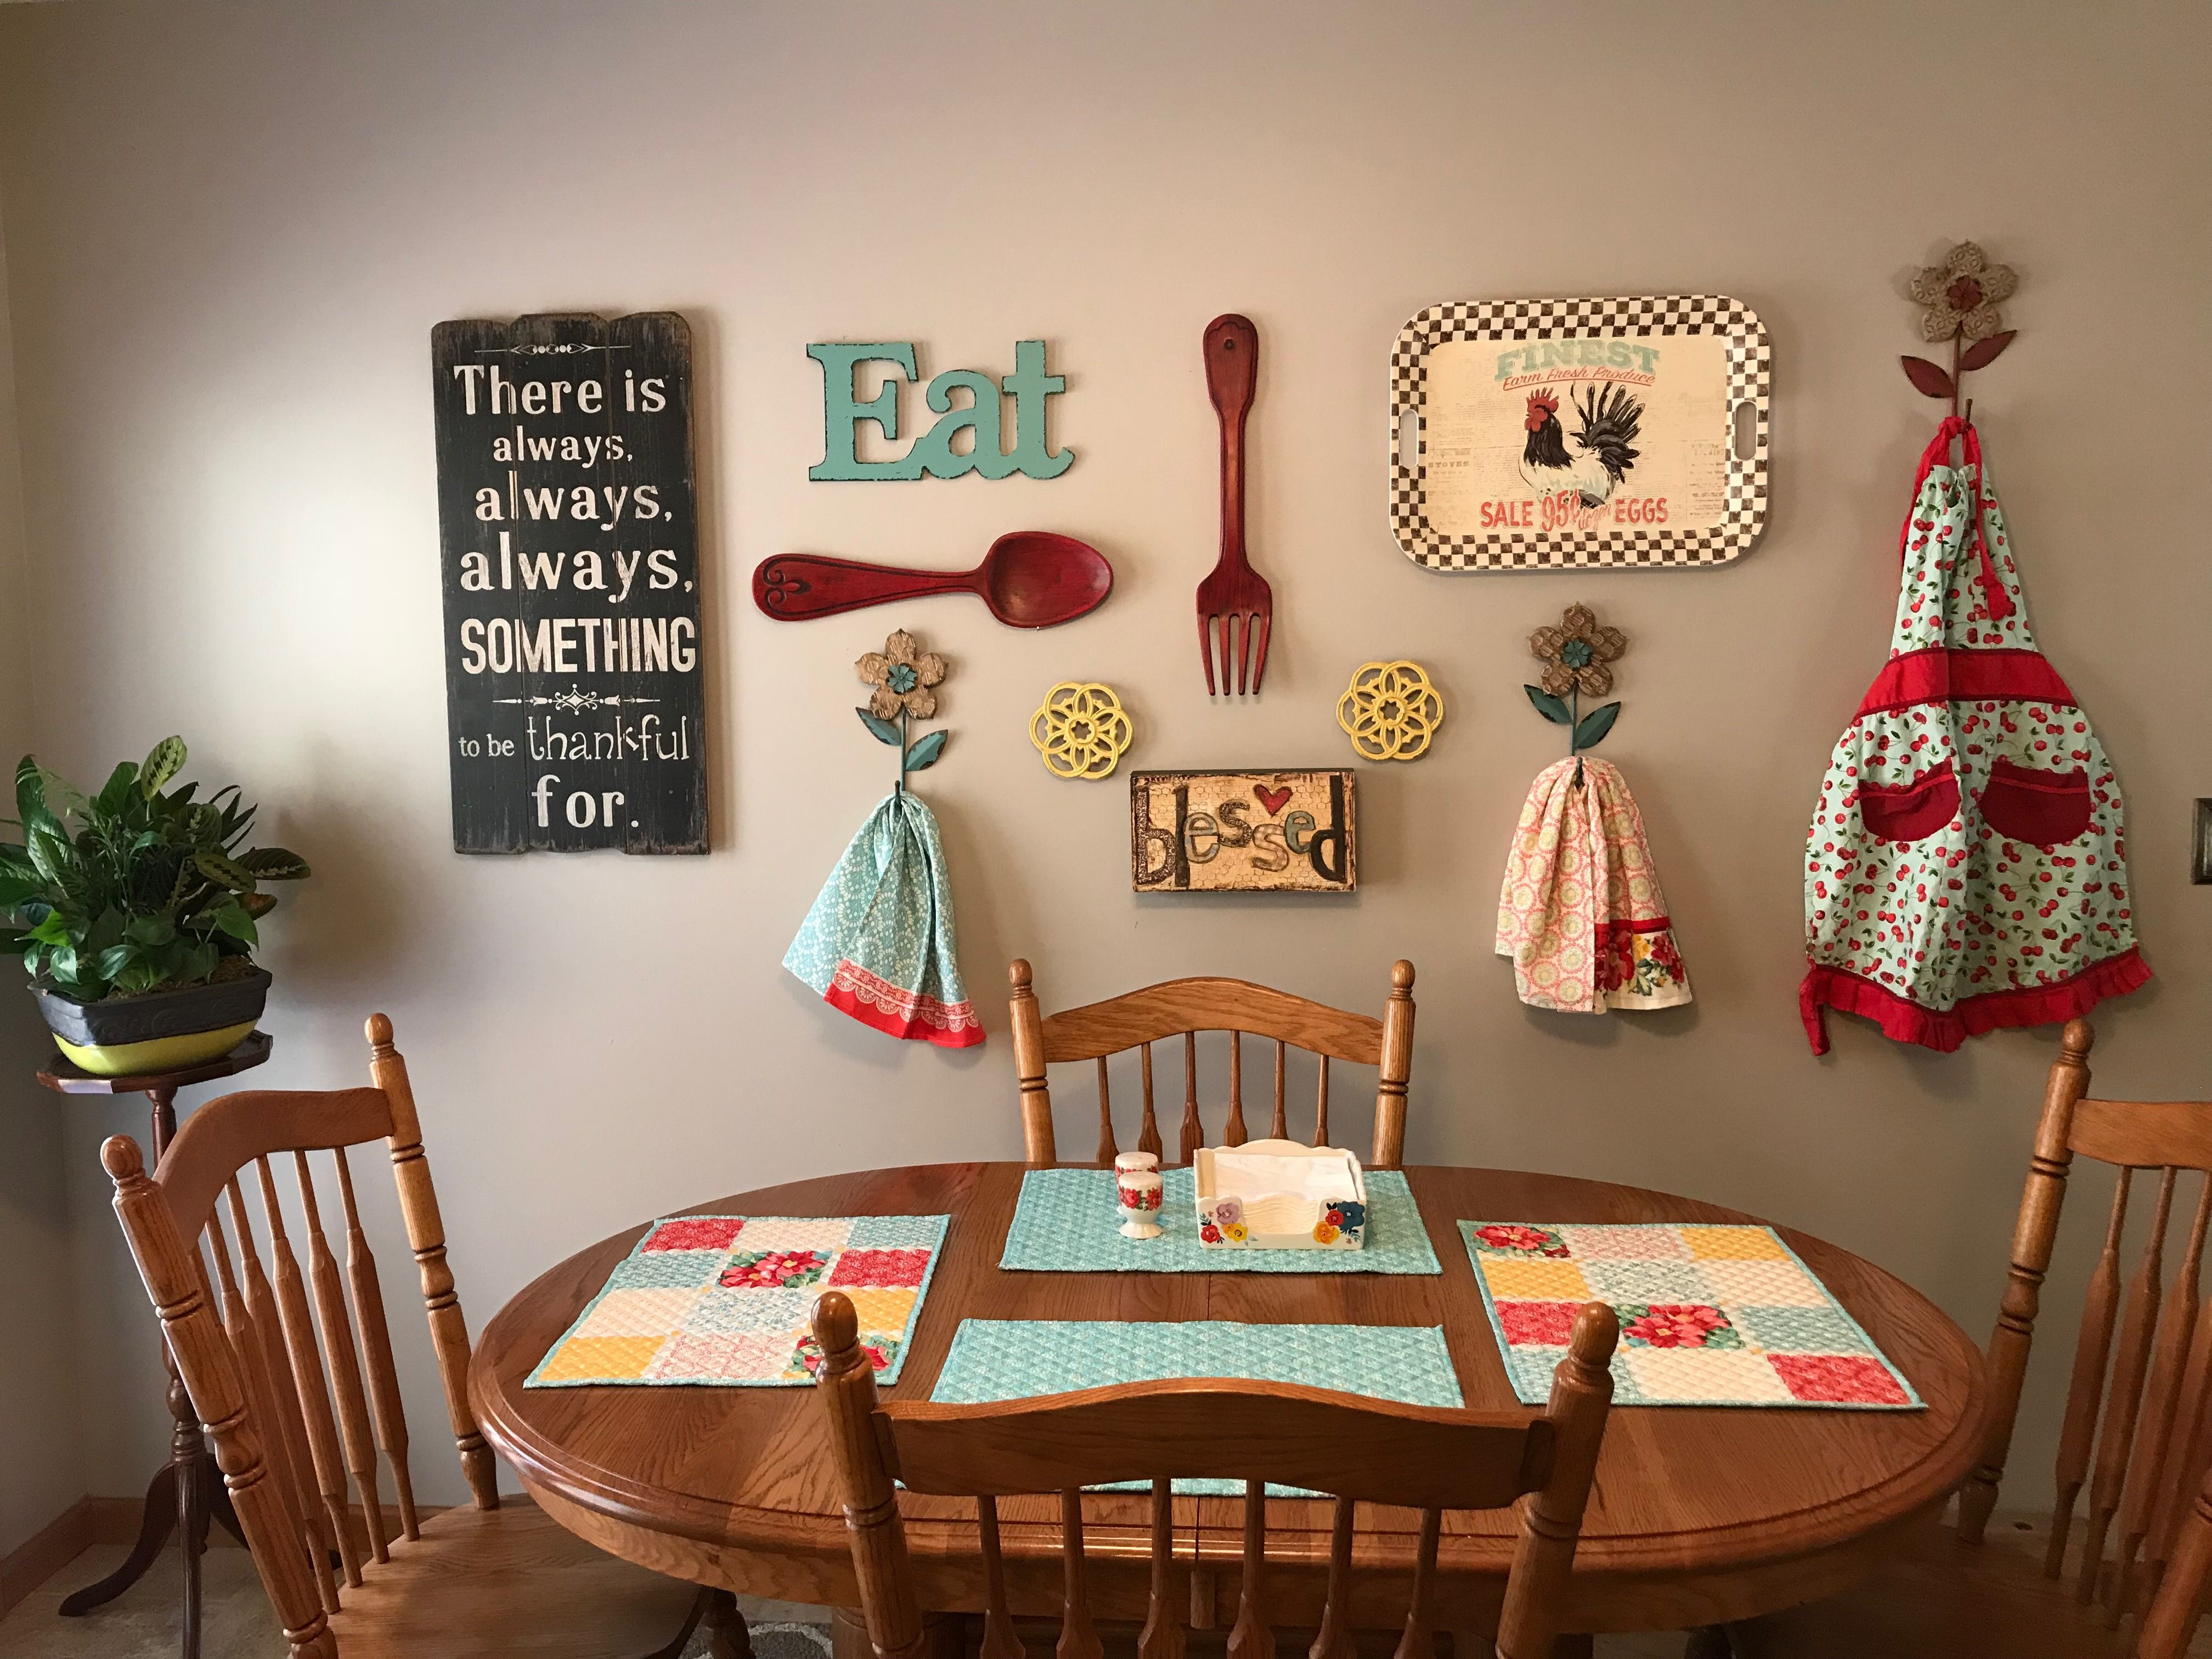 Gallery Wall Kitchen Wall Decor Pioneer Woman Kitchen Decor Kitchen Gallery Wall